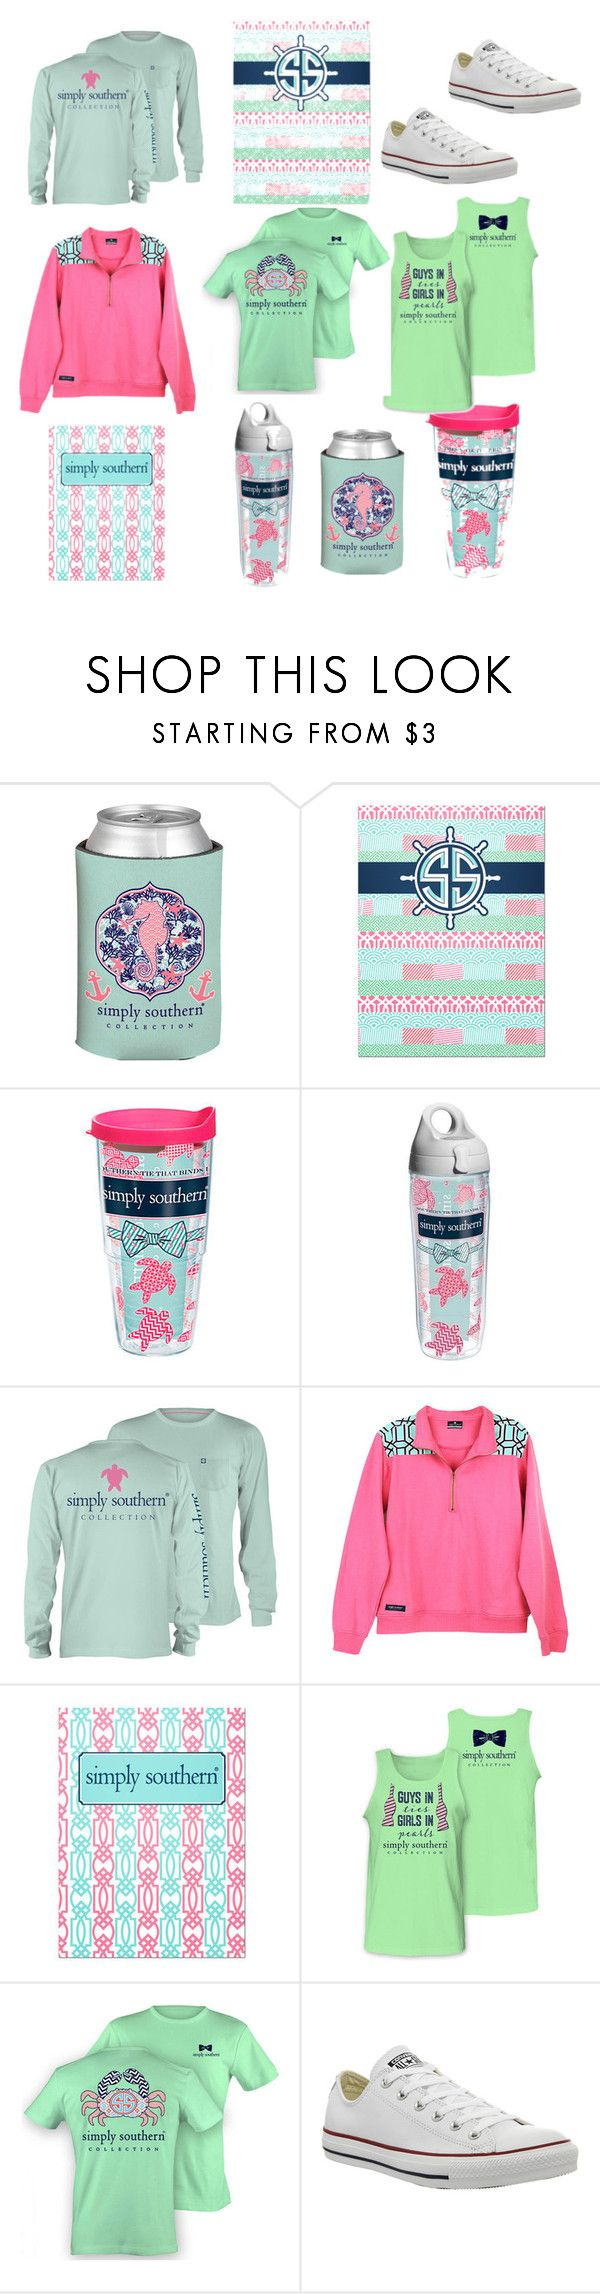 """Simply southern!!"" by sophie2341 ❤ liked on Polyvore featuring mode, Tervis et Converse"